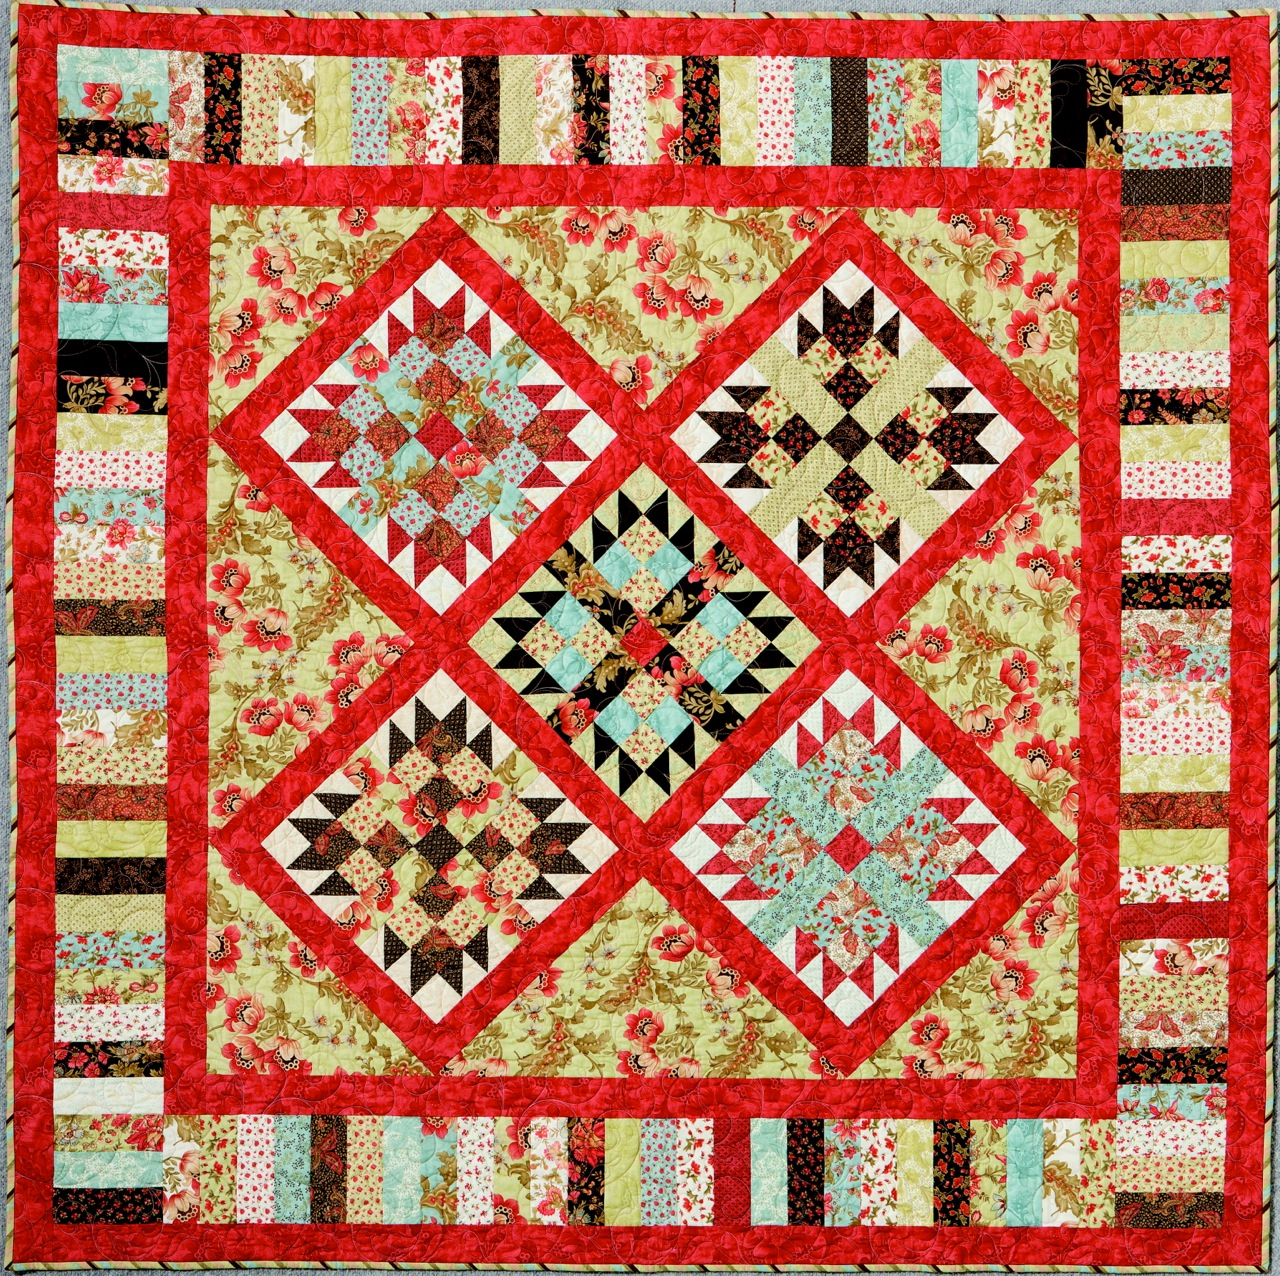 Learn how to make Katrina's Jelly Friends quilt on this issue's DVD.